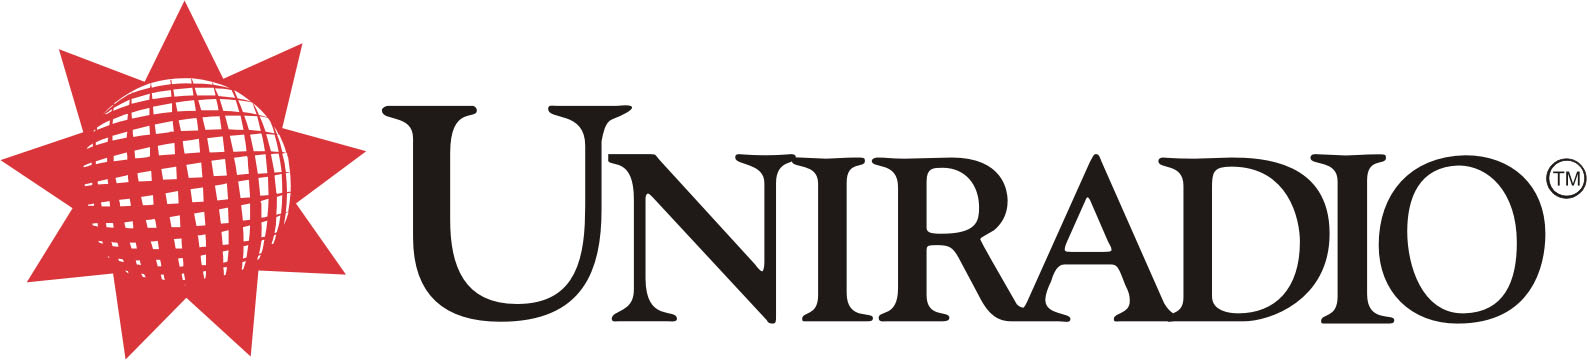 Corporate logo uniradio